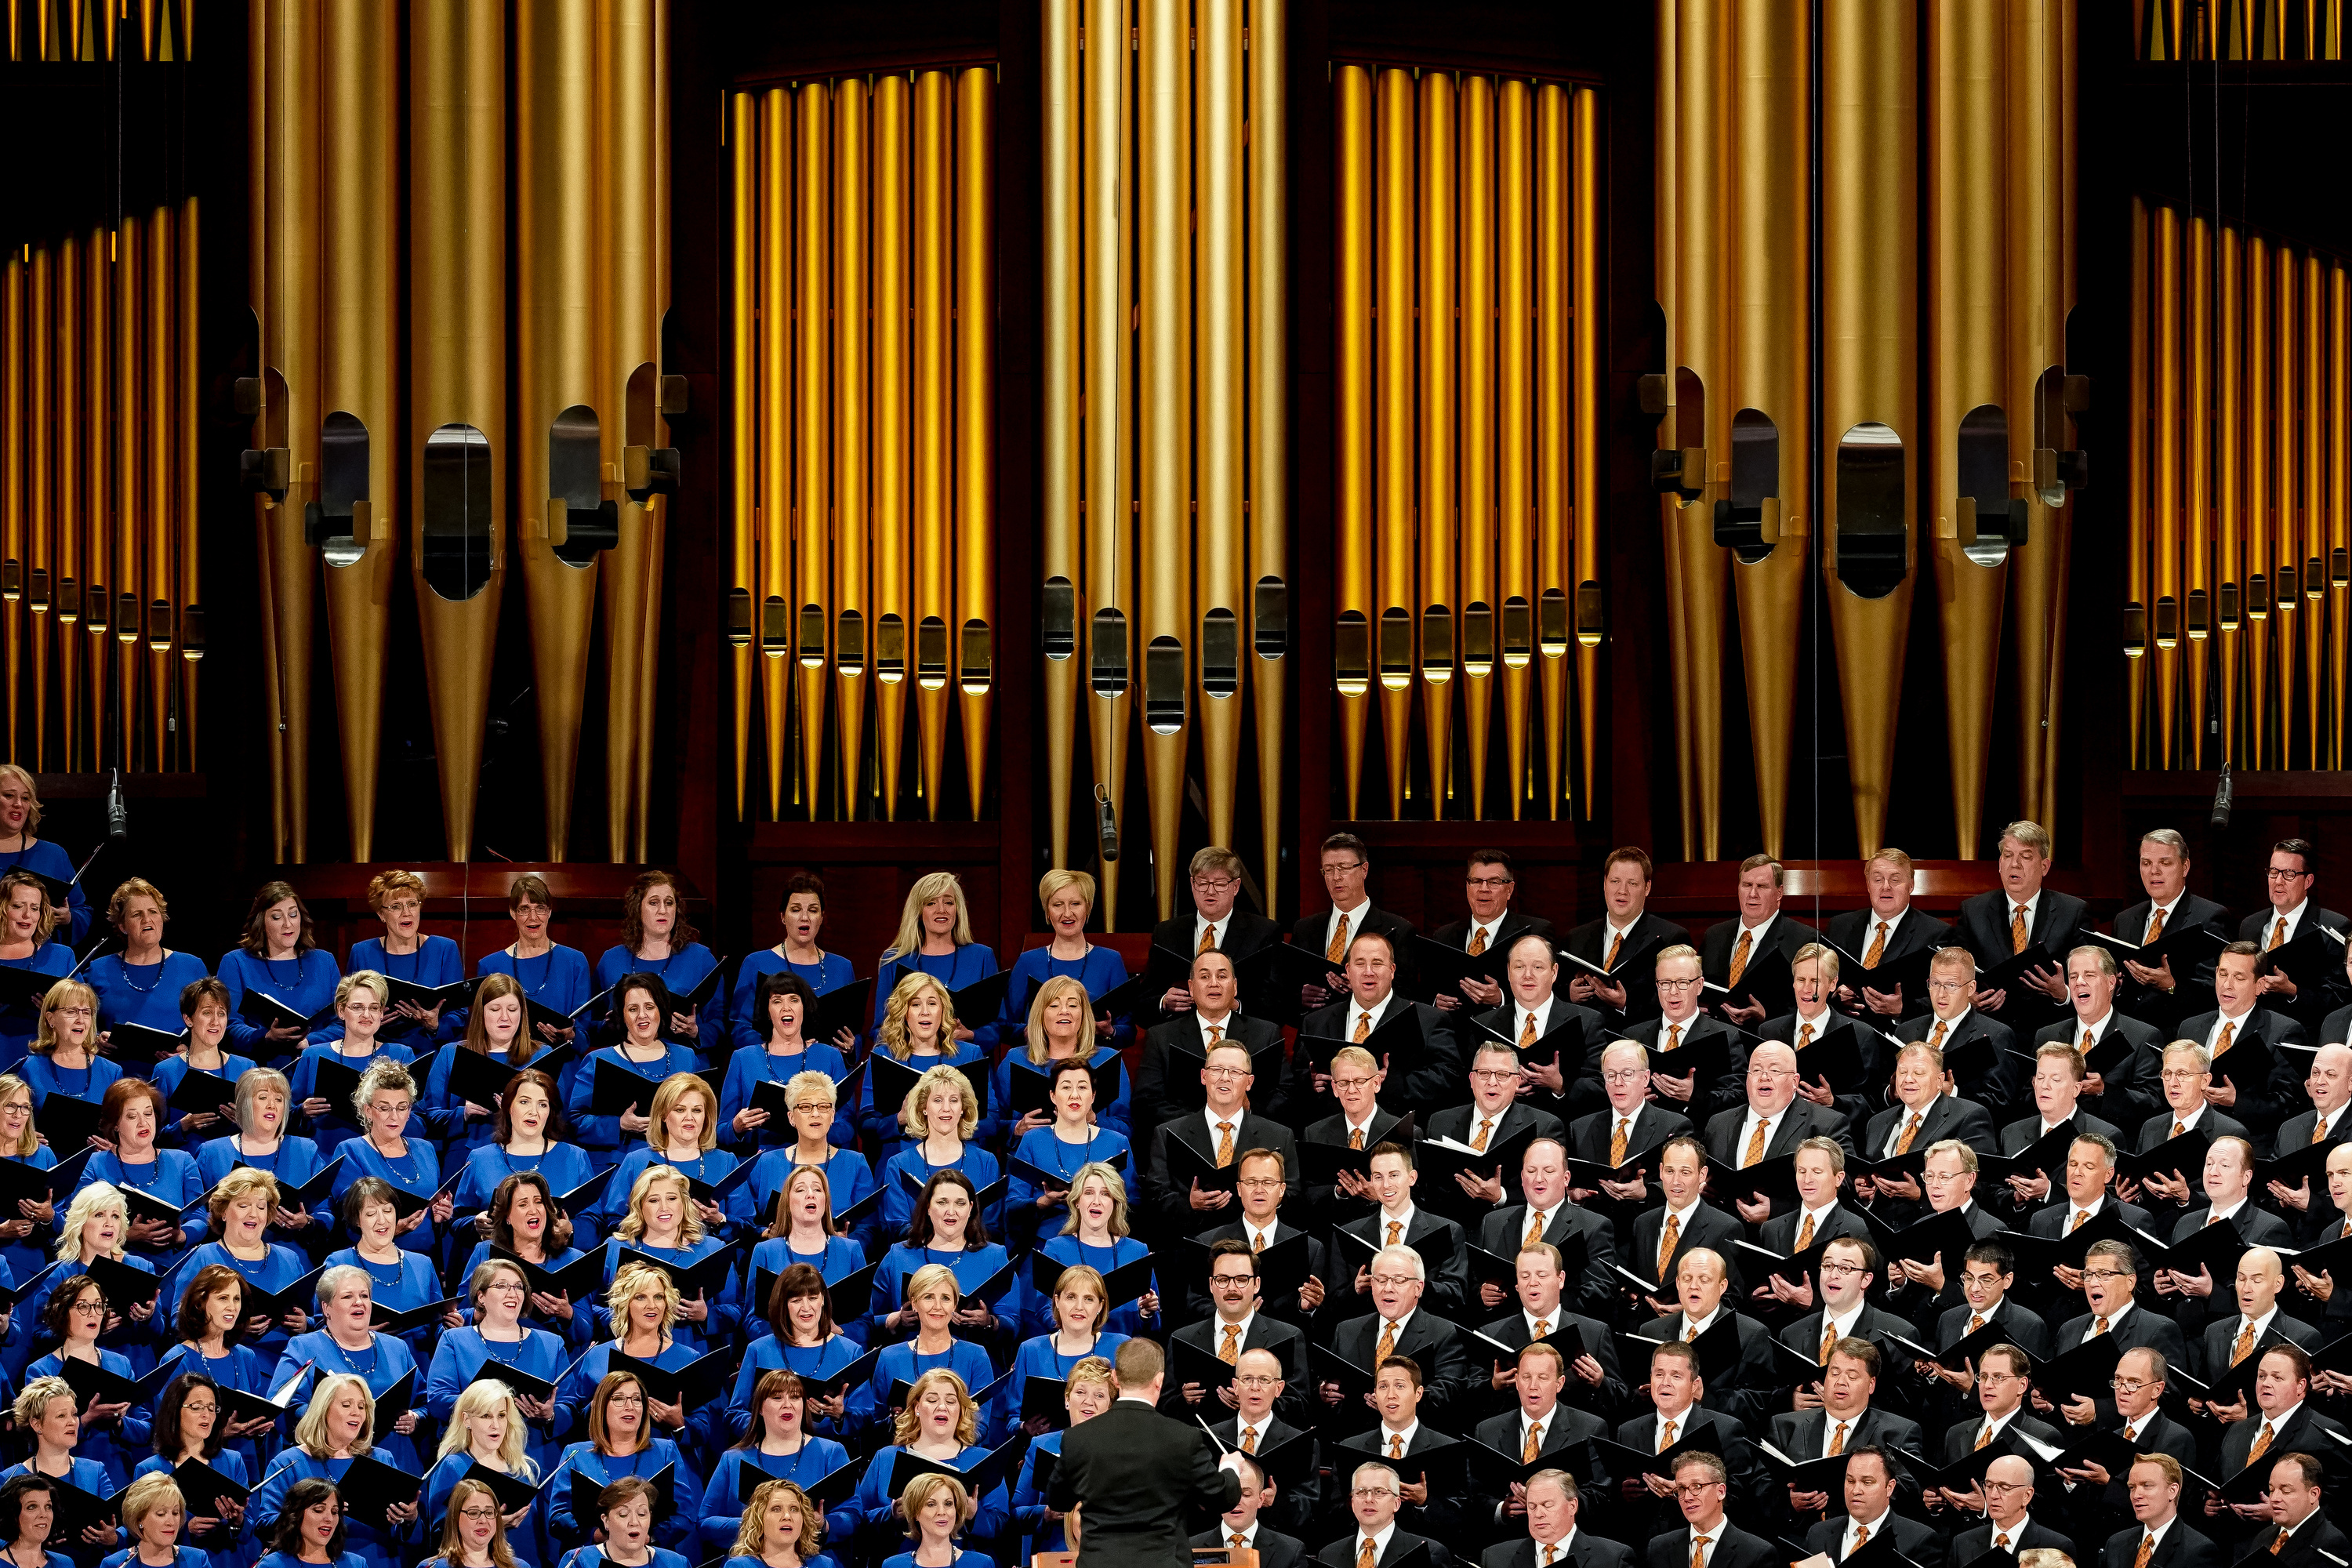 The Tabernacle Choir at Temple Square, directed by Mack Wilberg, sings during the Saturday morning session of the 189th Semiannual General Conference of The Church of Jesus Christ of Latter-day Saints in the Conference Center in Salt Lake City on Saturday, Oct. 5, 2019.